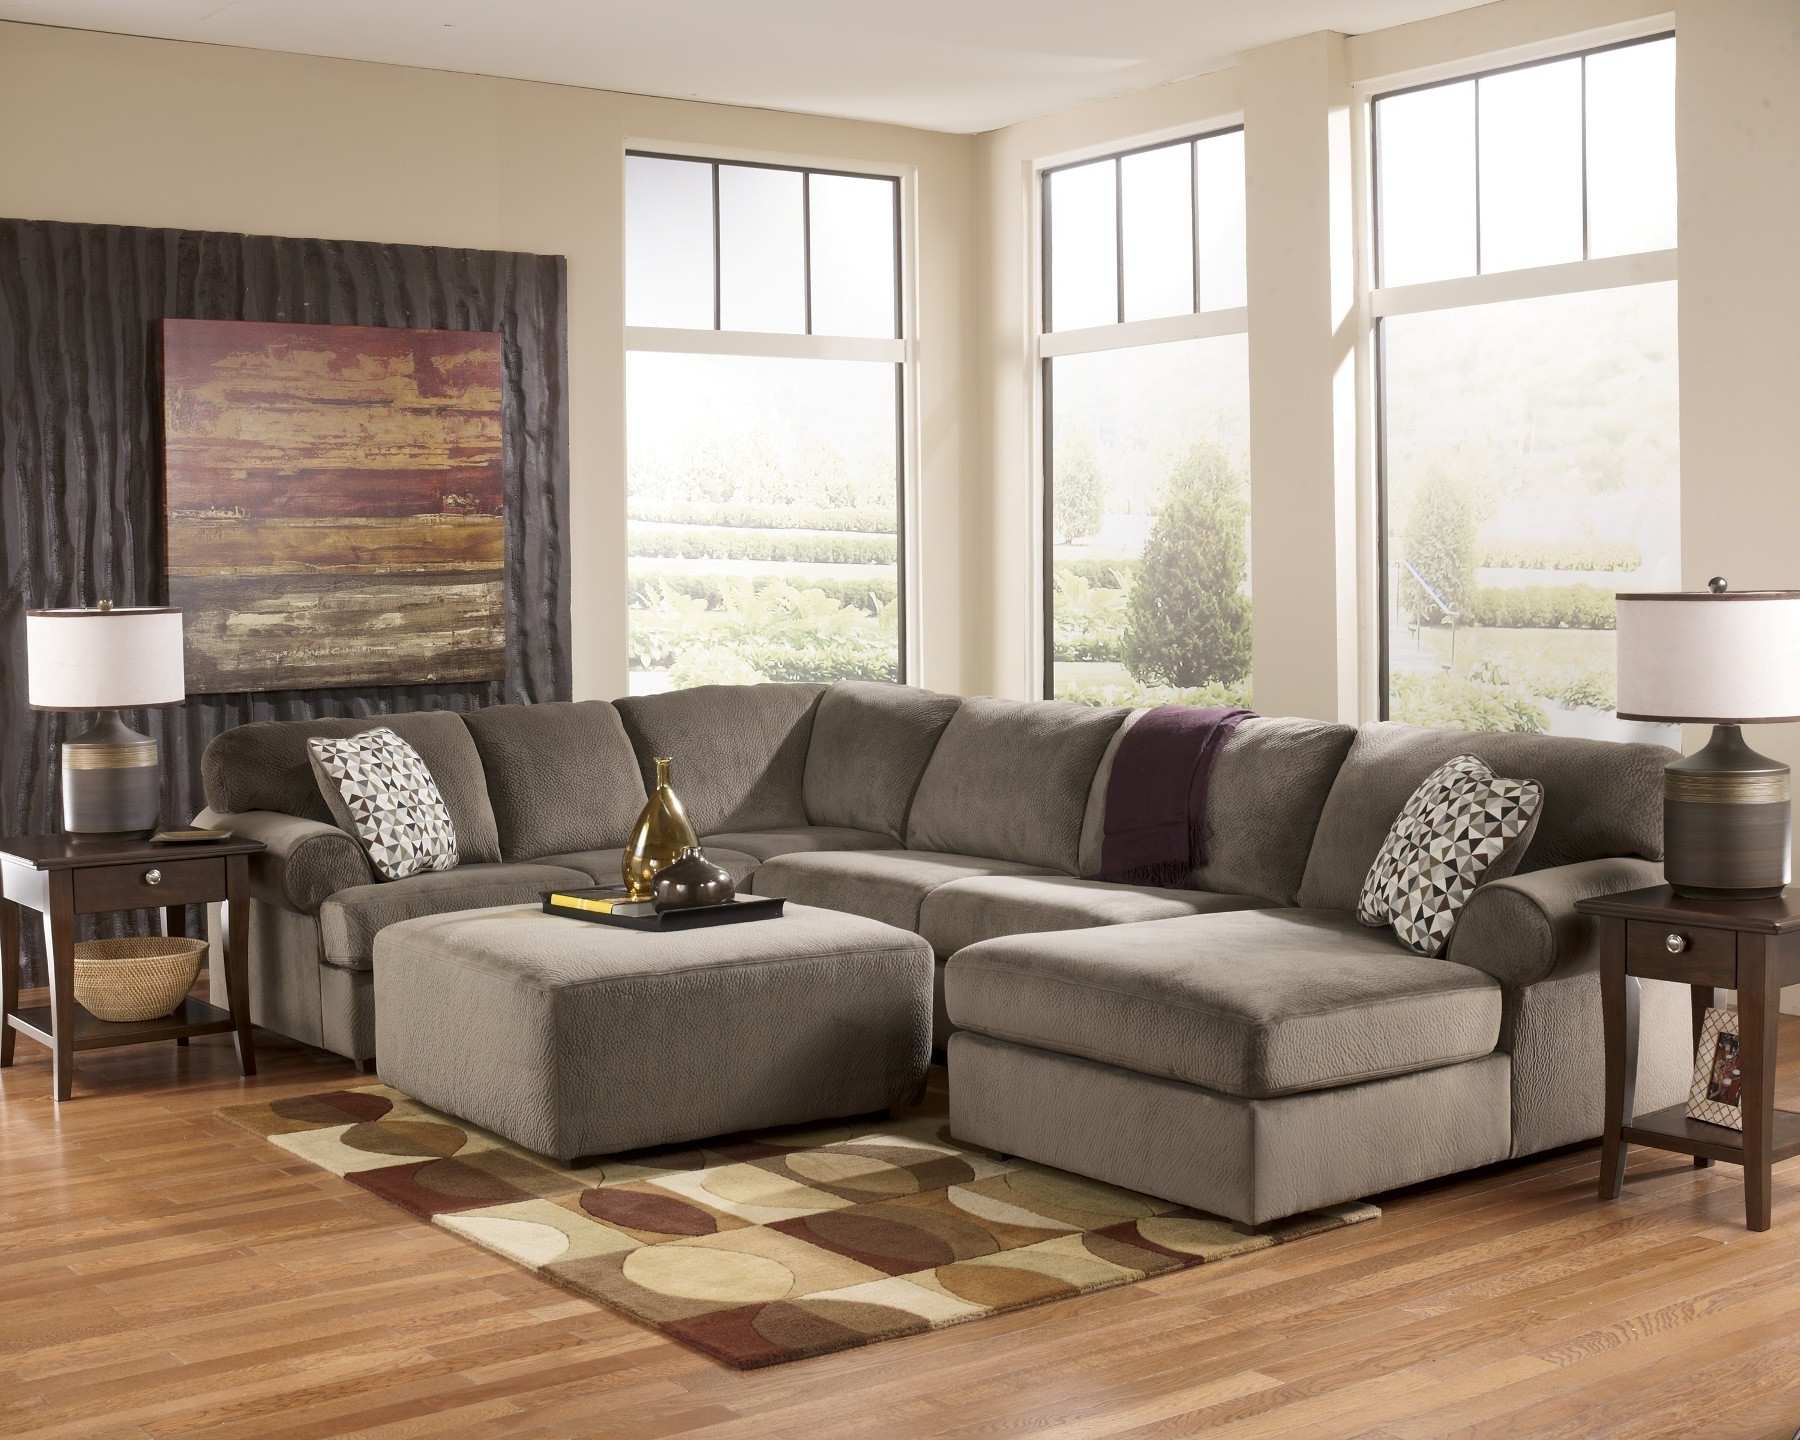 Trendy Asc Furniture – El Paso, Tx With Regard To El Paso Tx Sectional Sofas (View 19 of 20)